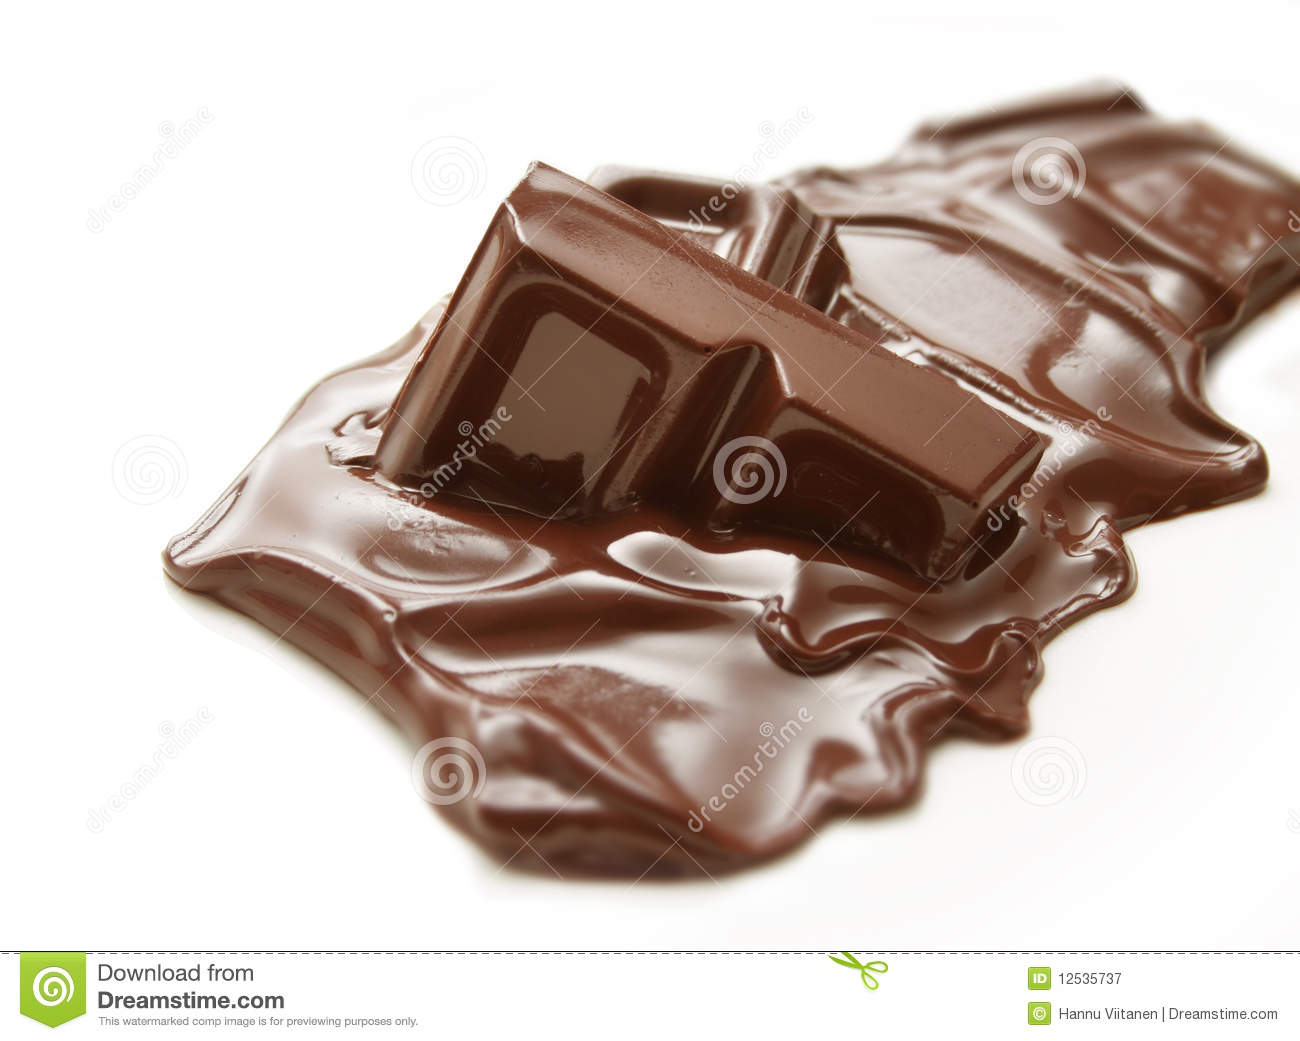 external image melting-chocolate-bar-12535737.jpg